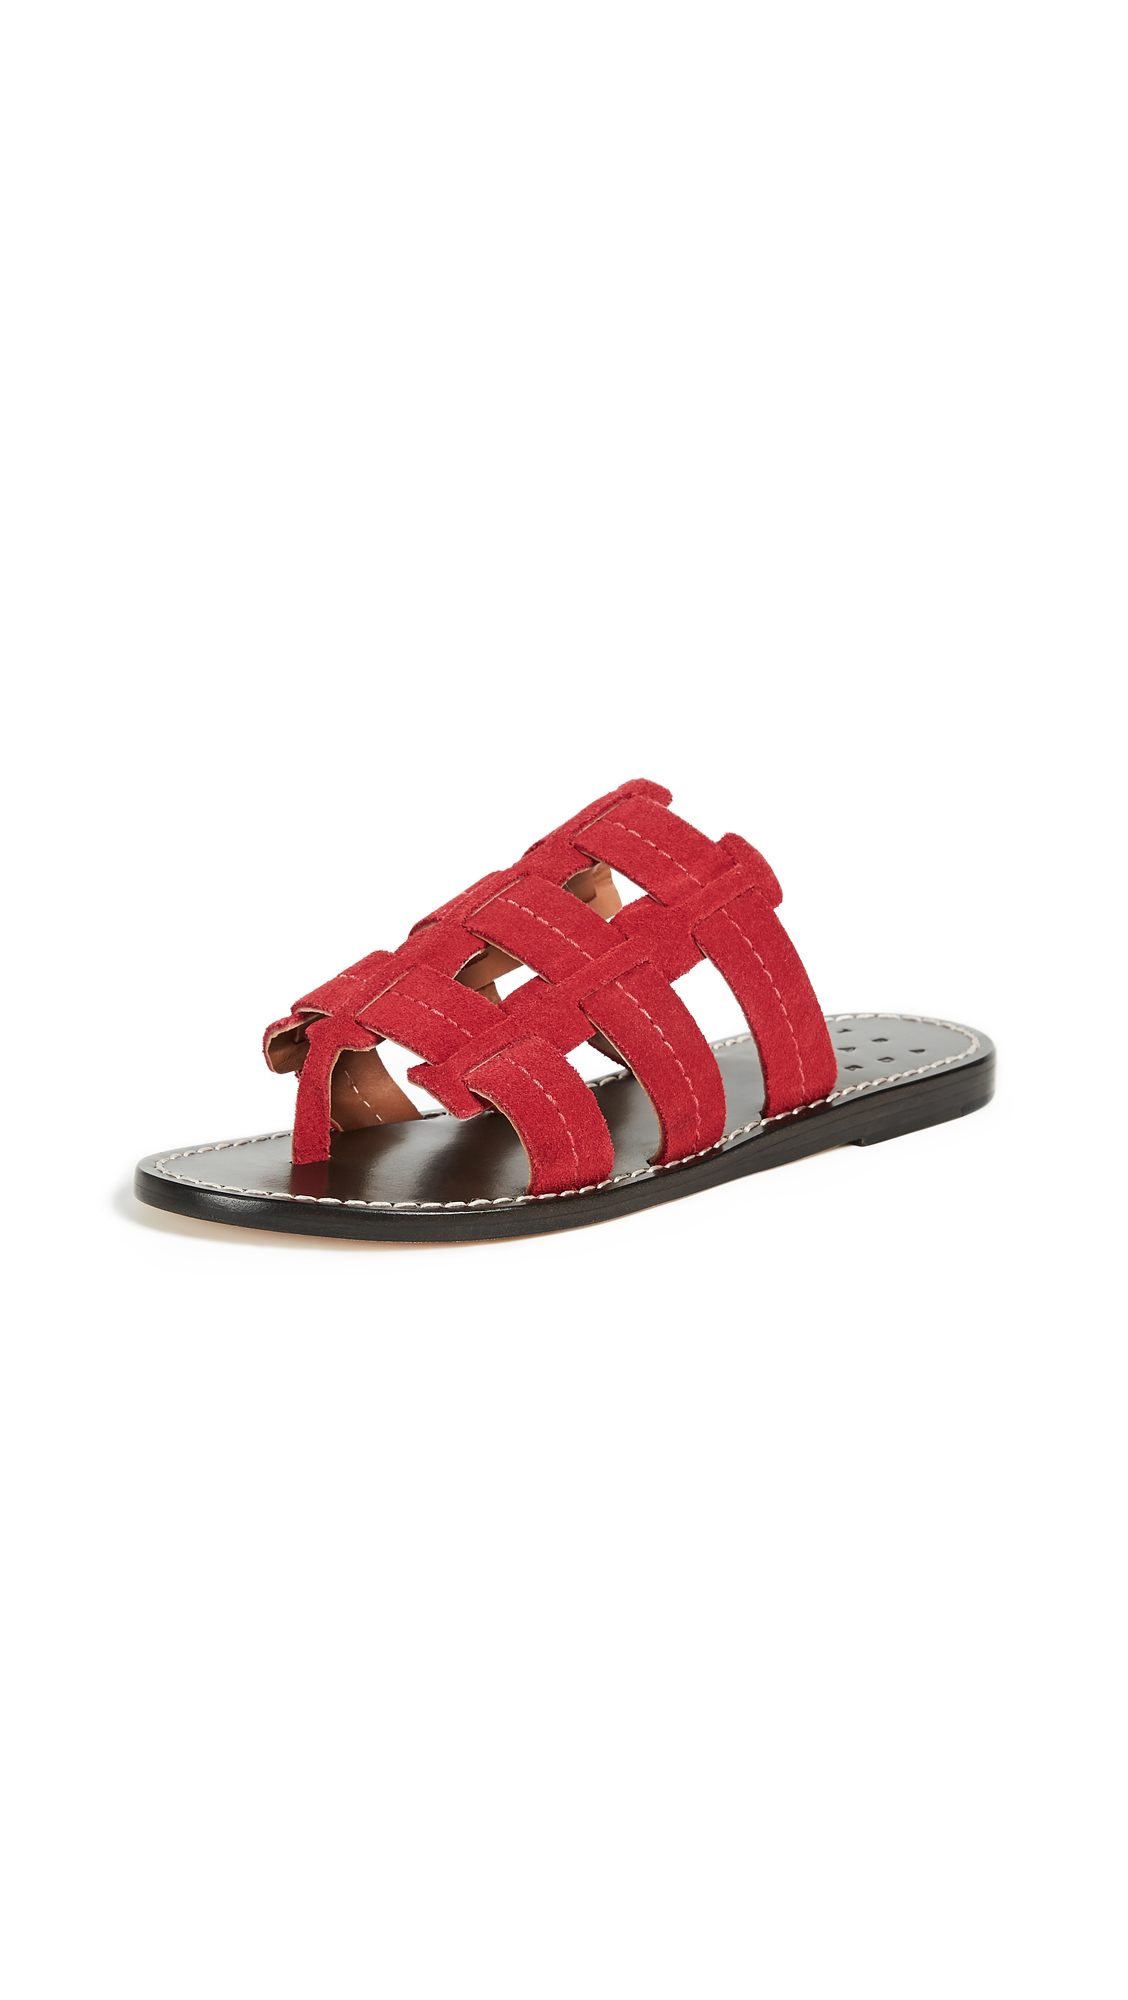 Trademark Cage Suede Sandals - Red